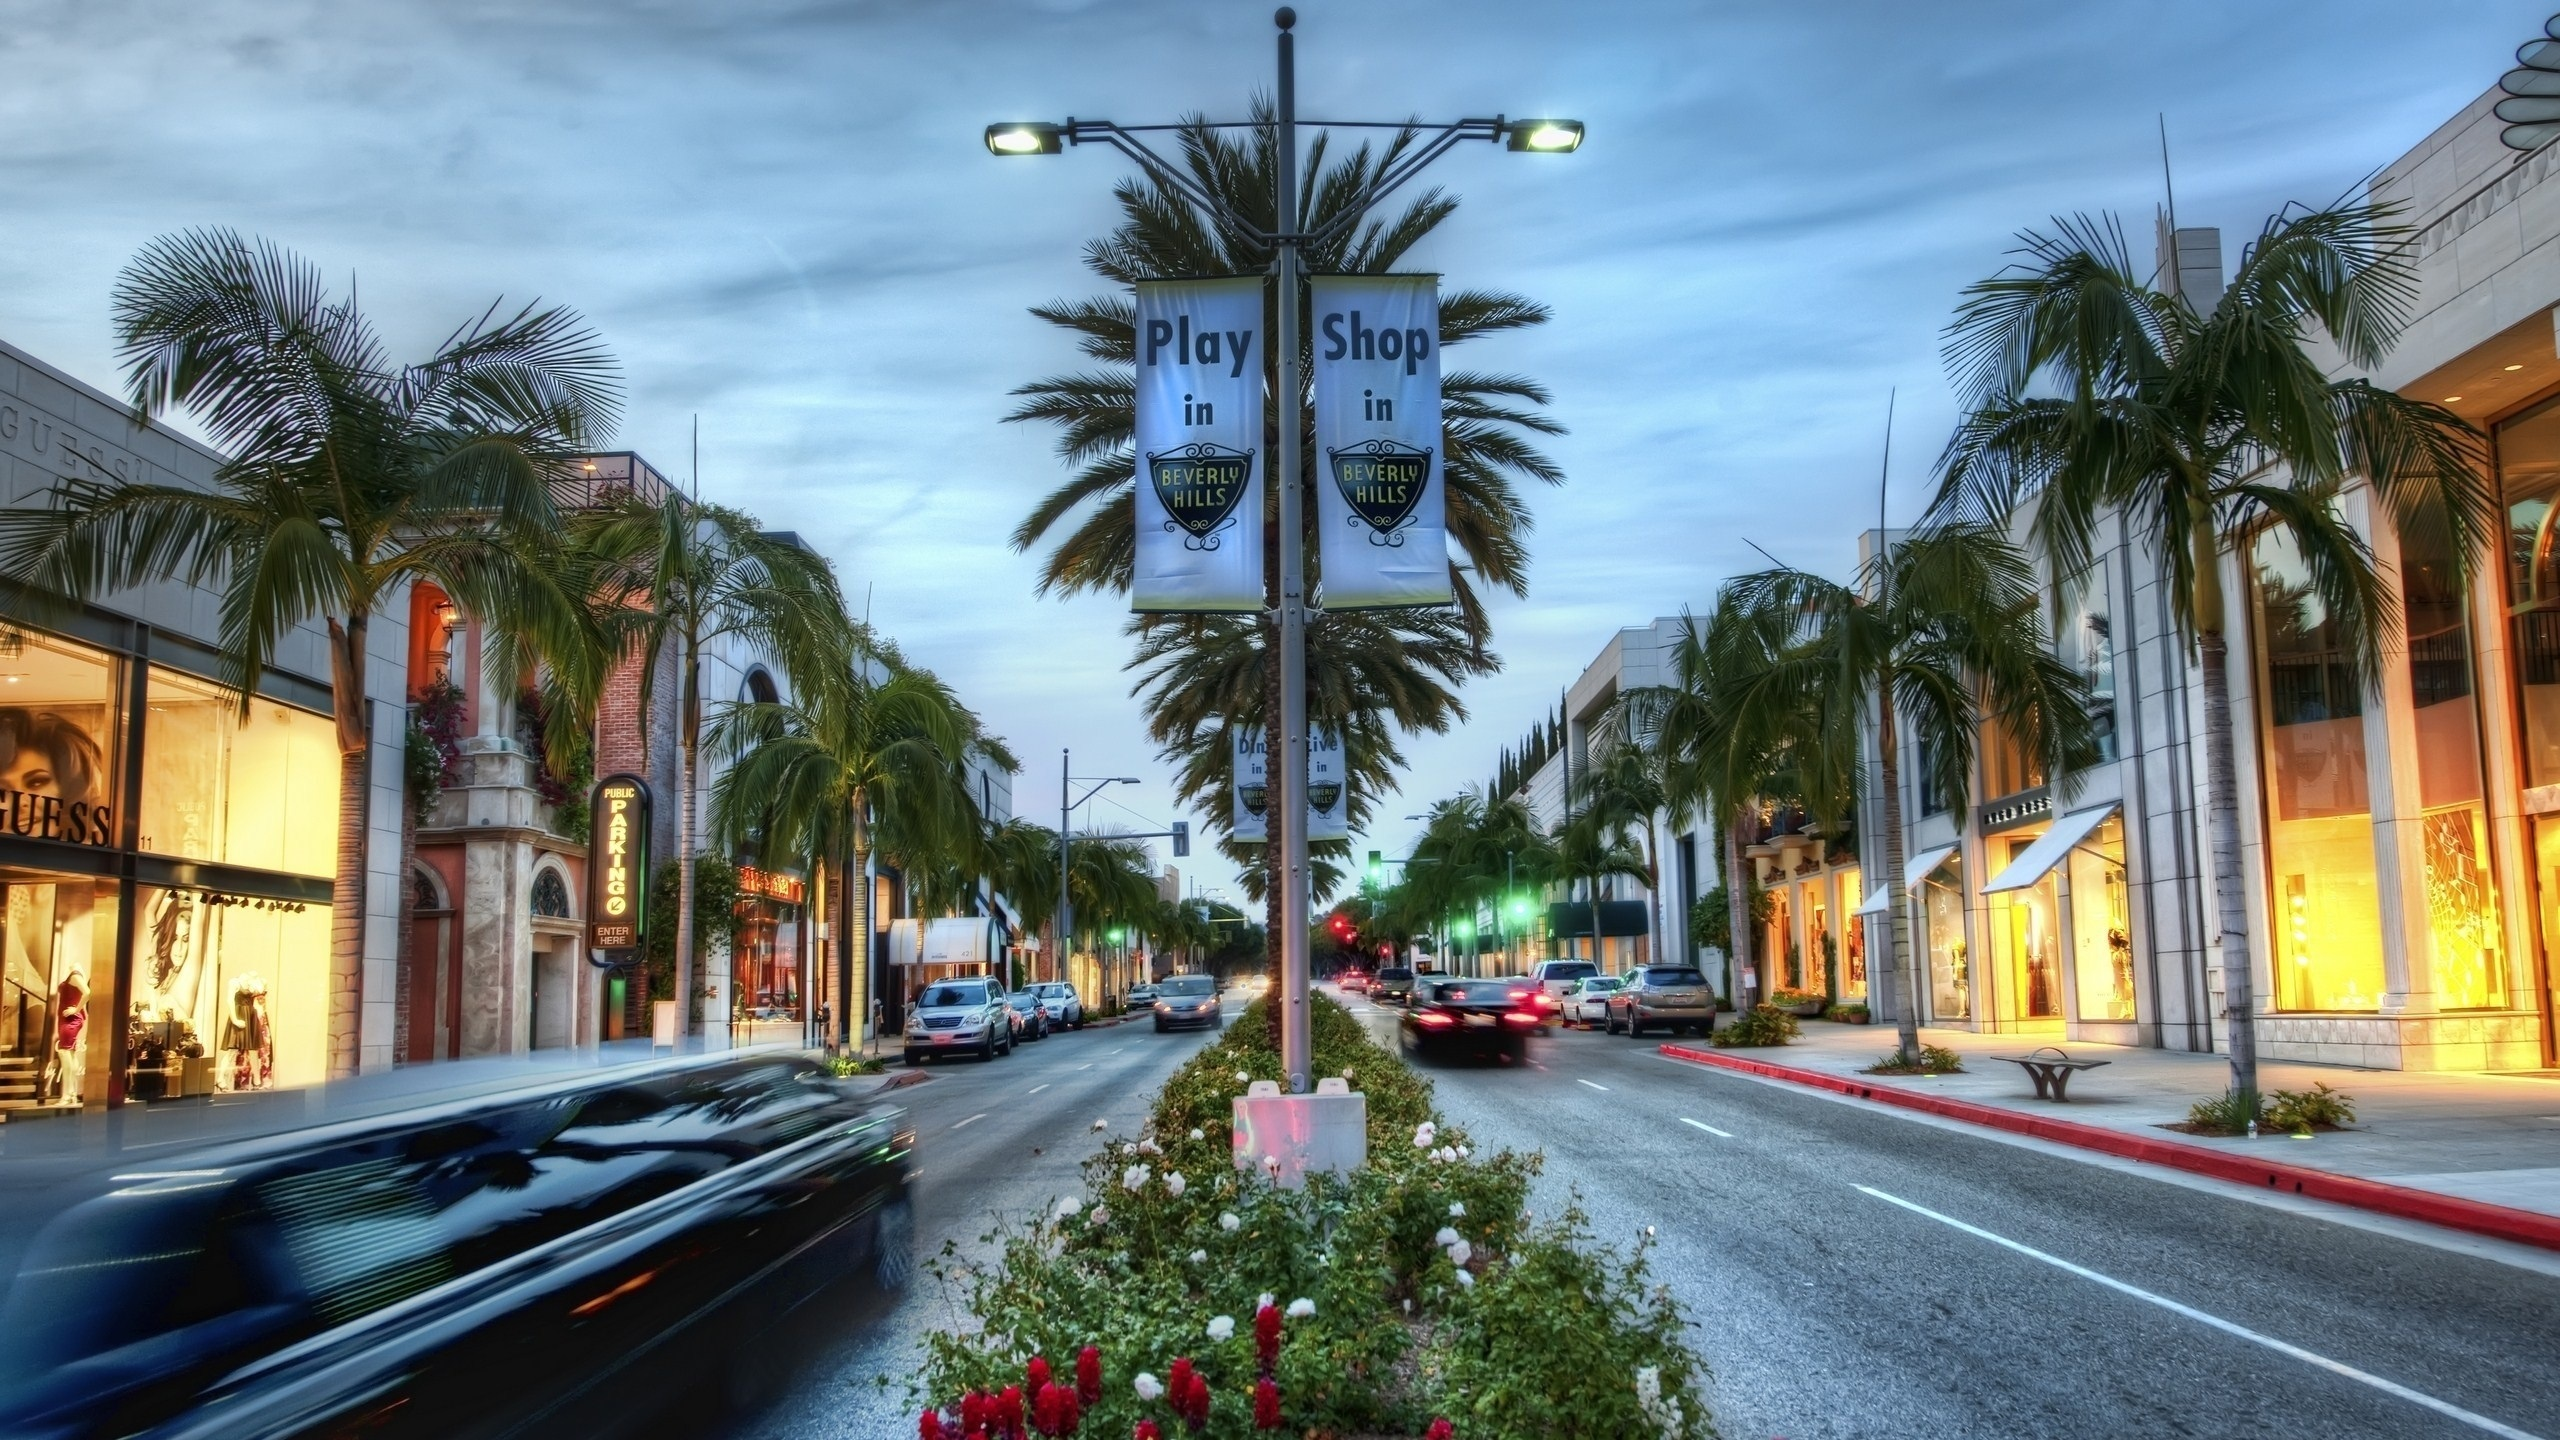 Wallpaper Los Angeles Hollywood Shop Palm Trees Hdr Style Usa